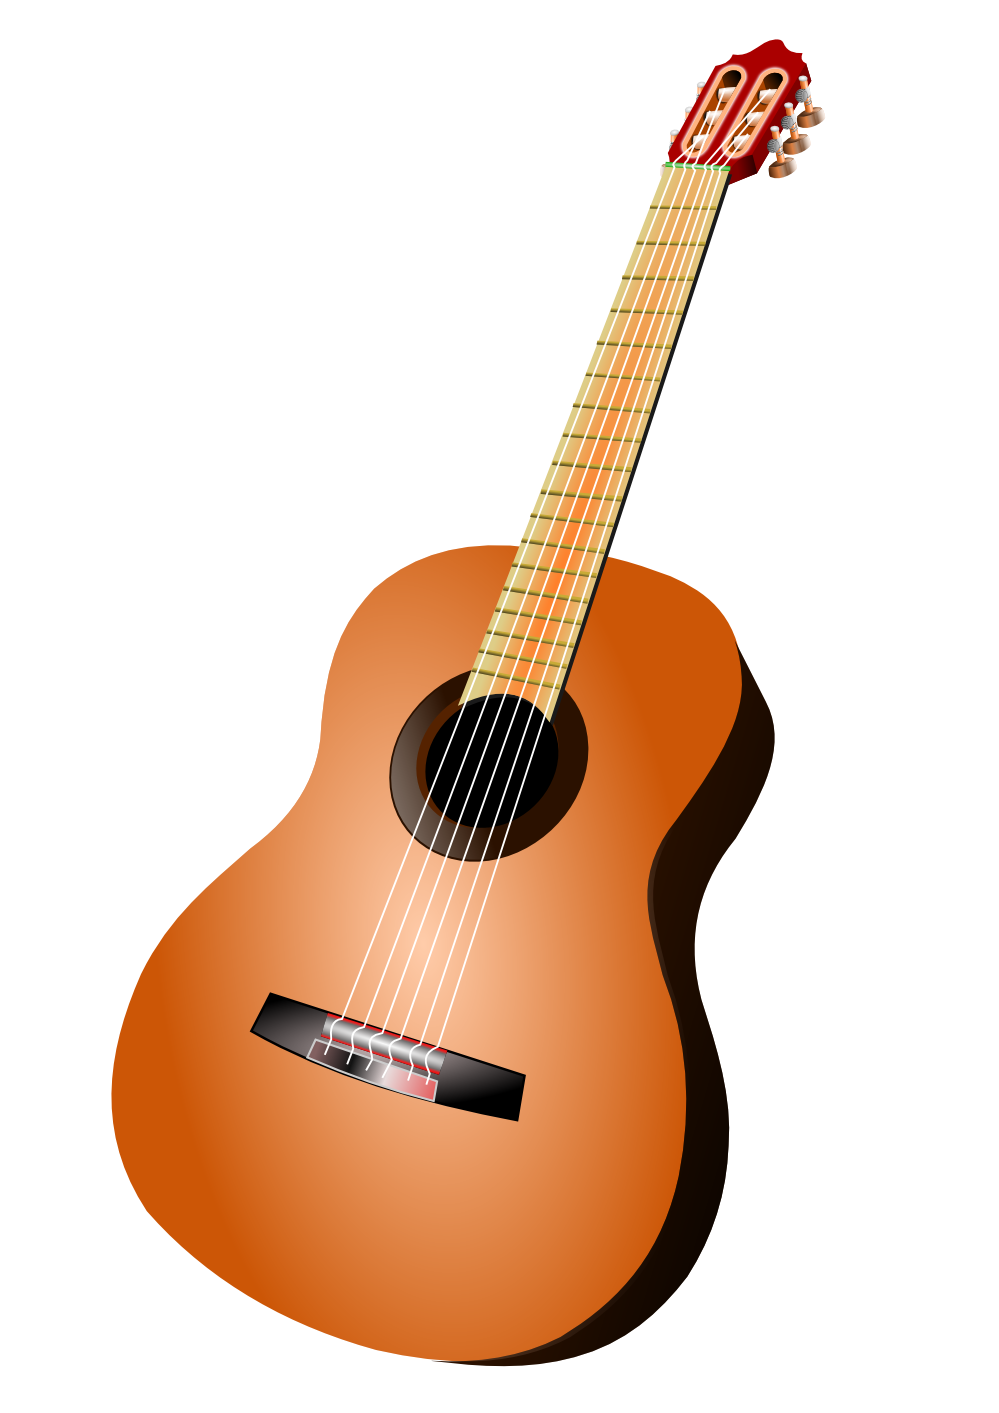 Pin by Hopeless on Clipart | Guitar clipart, Acoustic guitar ... clipart